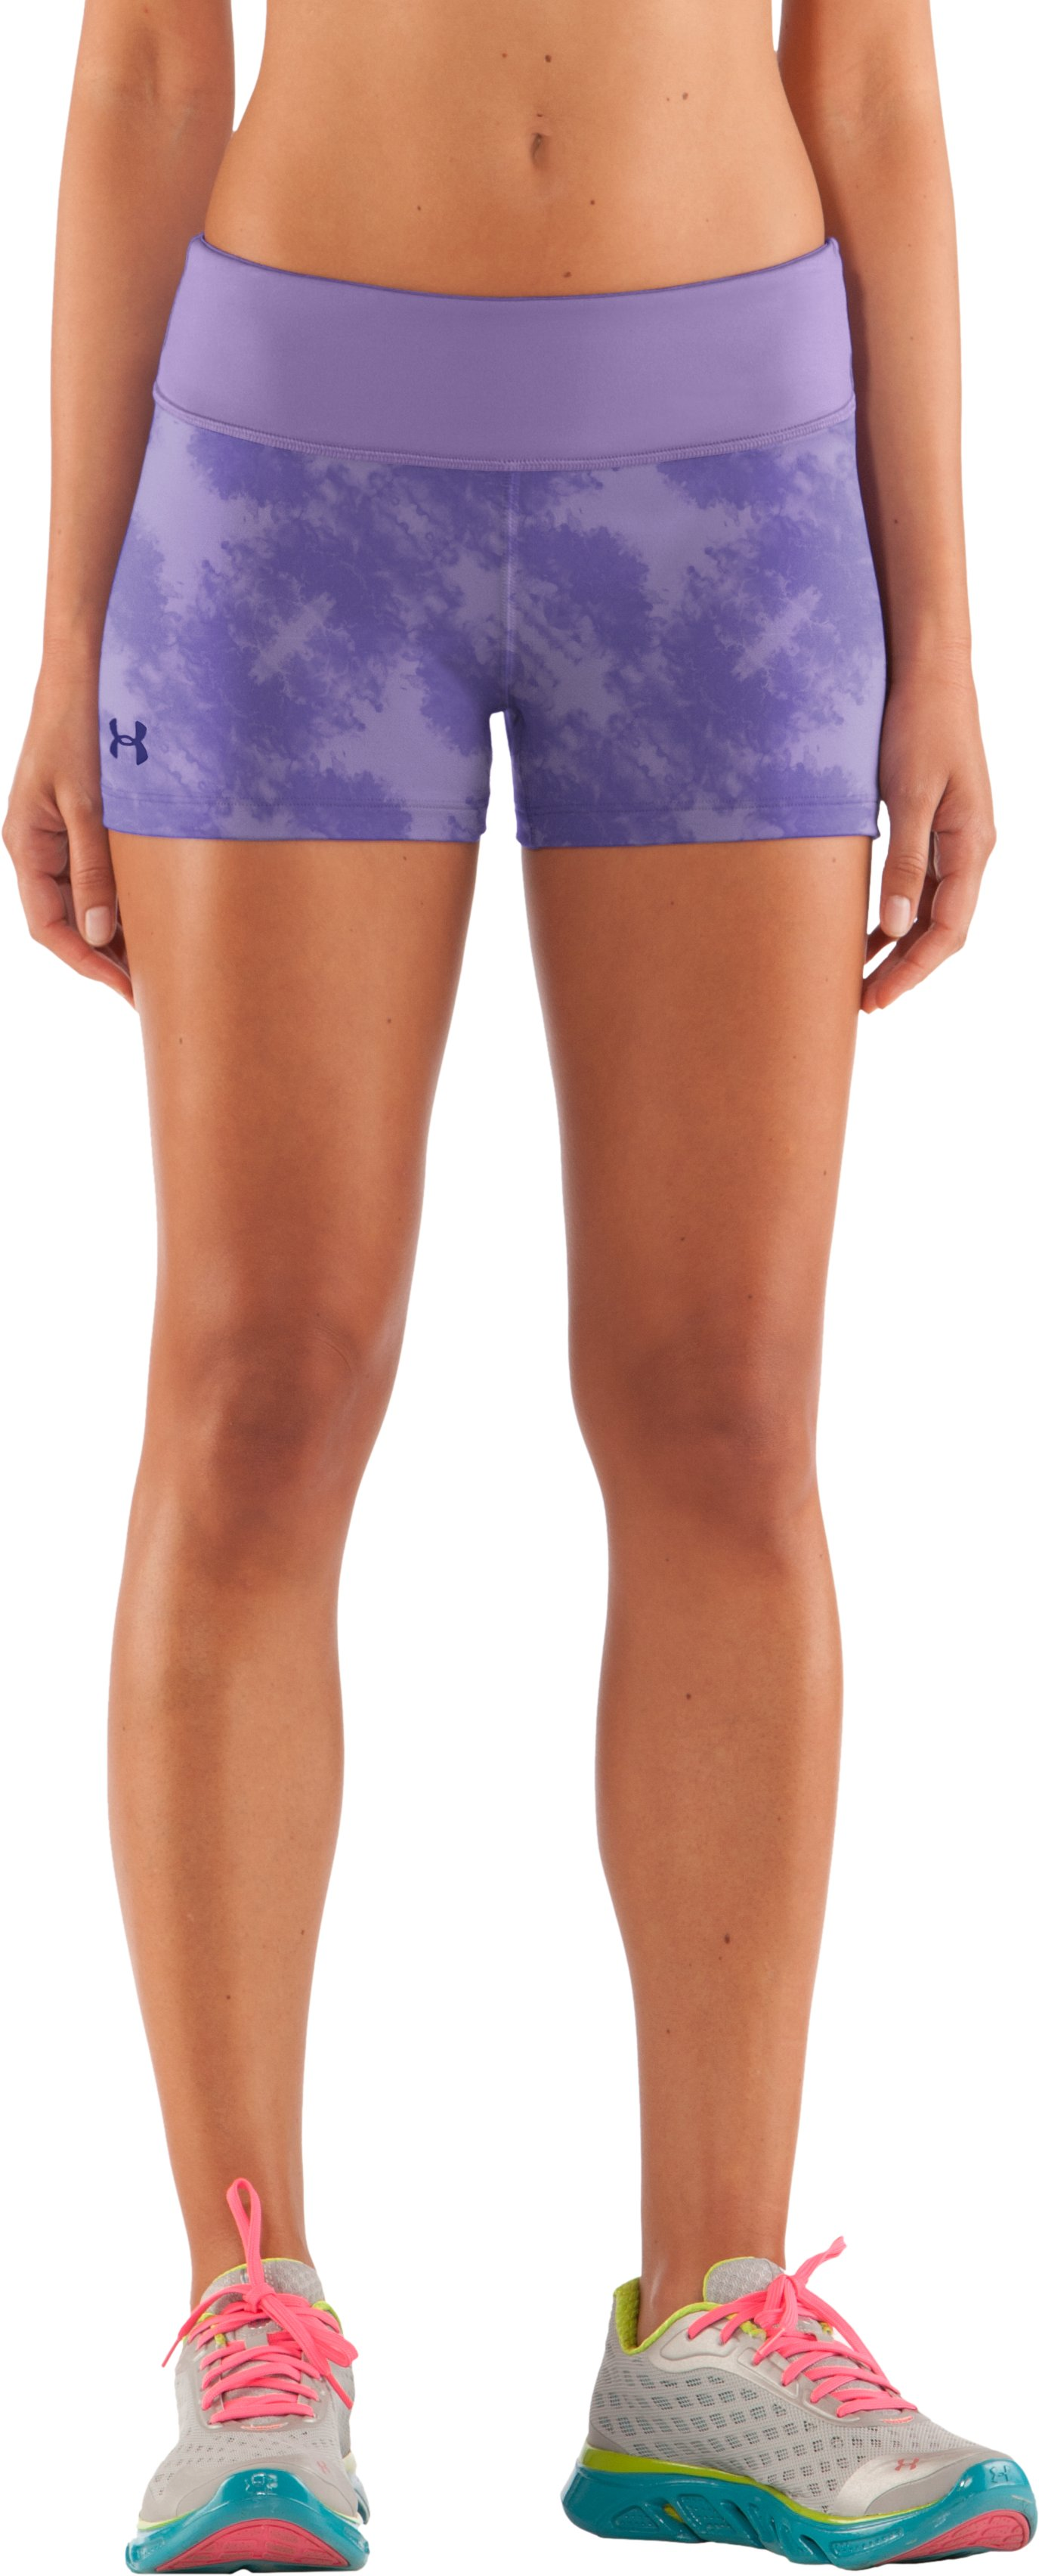 "Women's HeatGear® Sonic 2.5"" Printed Shorty, Petunia, zoomed image"